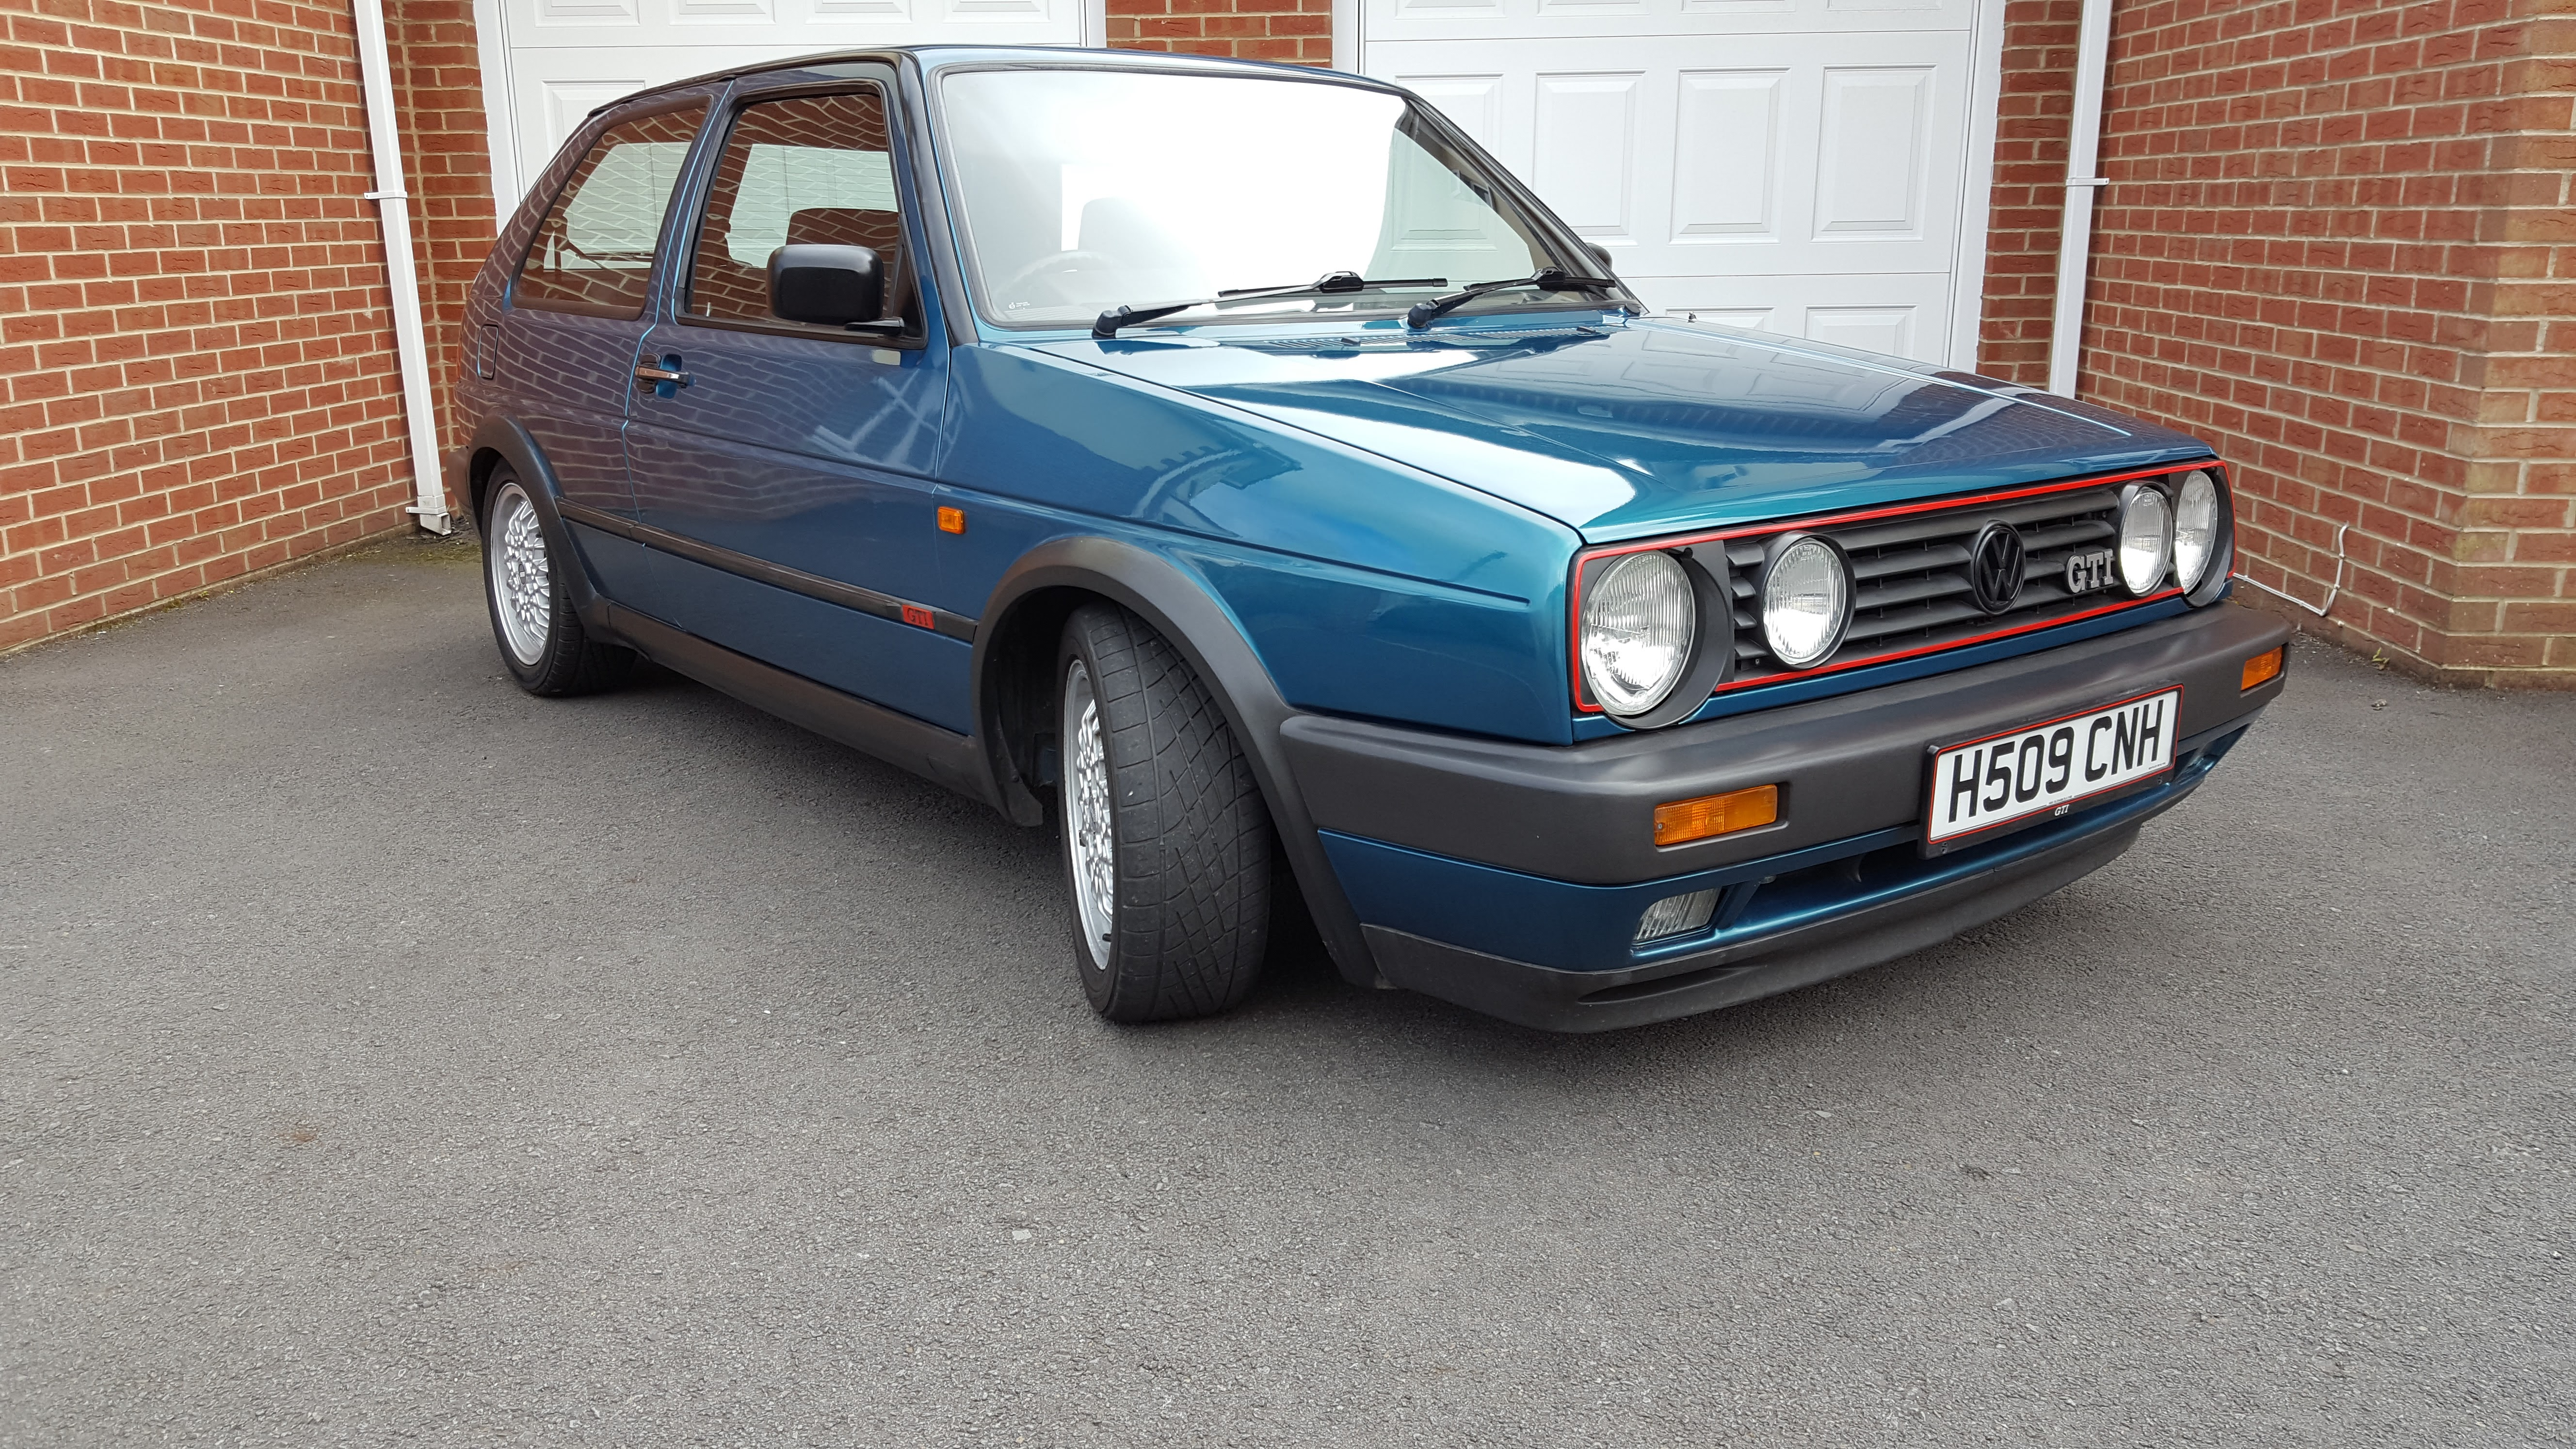 Golf Car For Sale: VW Golf Mk2 OC - Cars For Sale